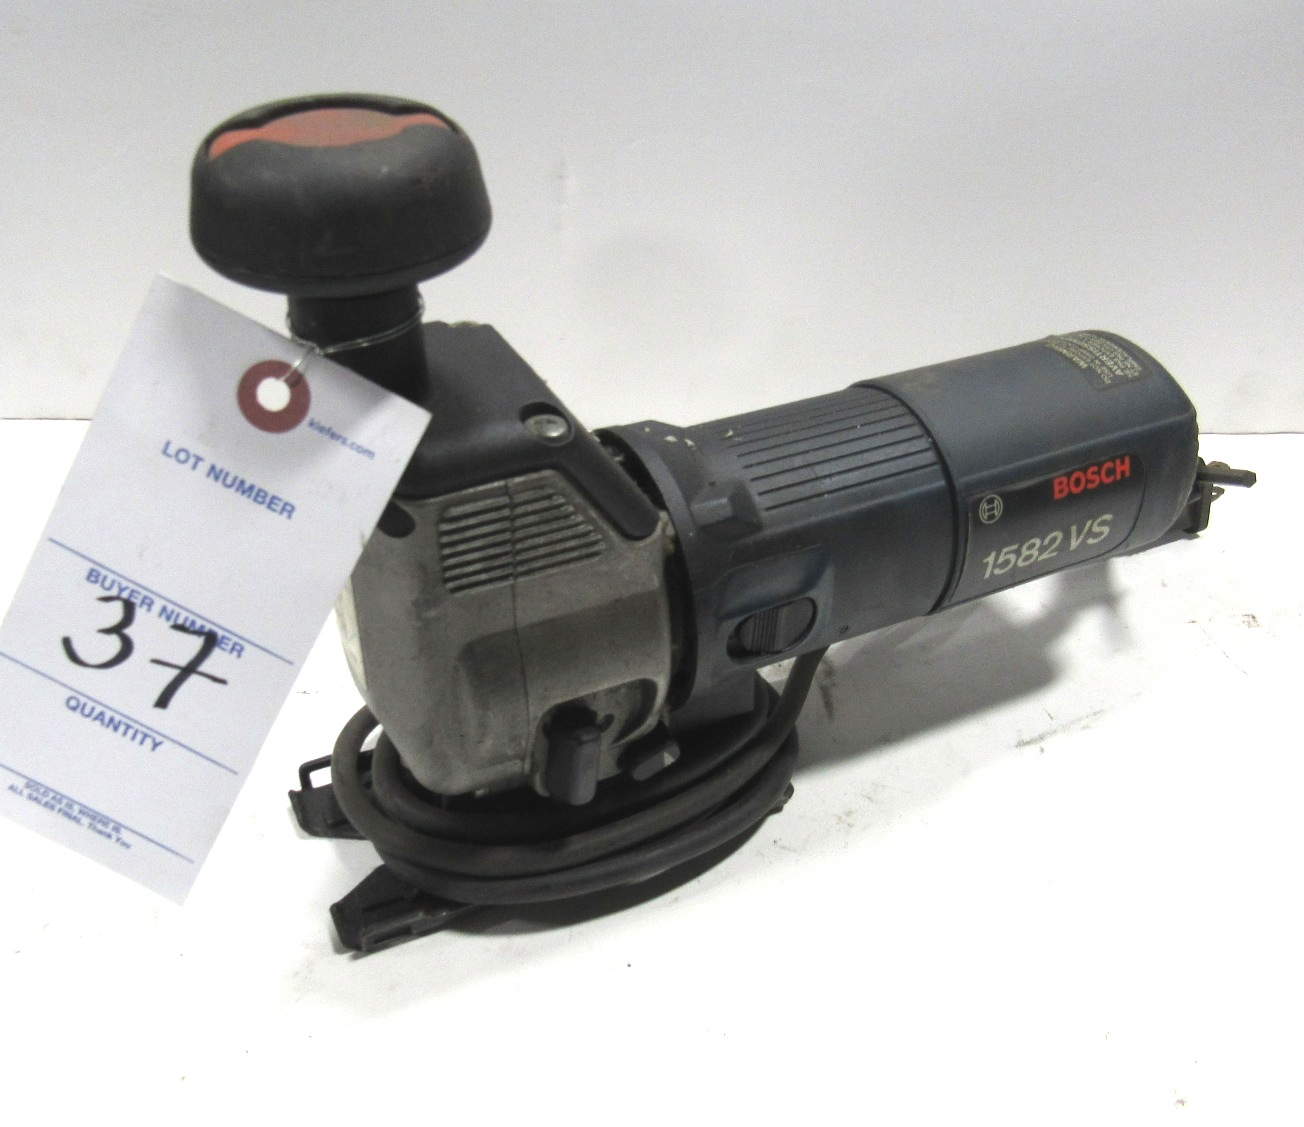 Lot 37 - Bosch 1522 VS Electric Saw